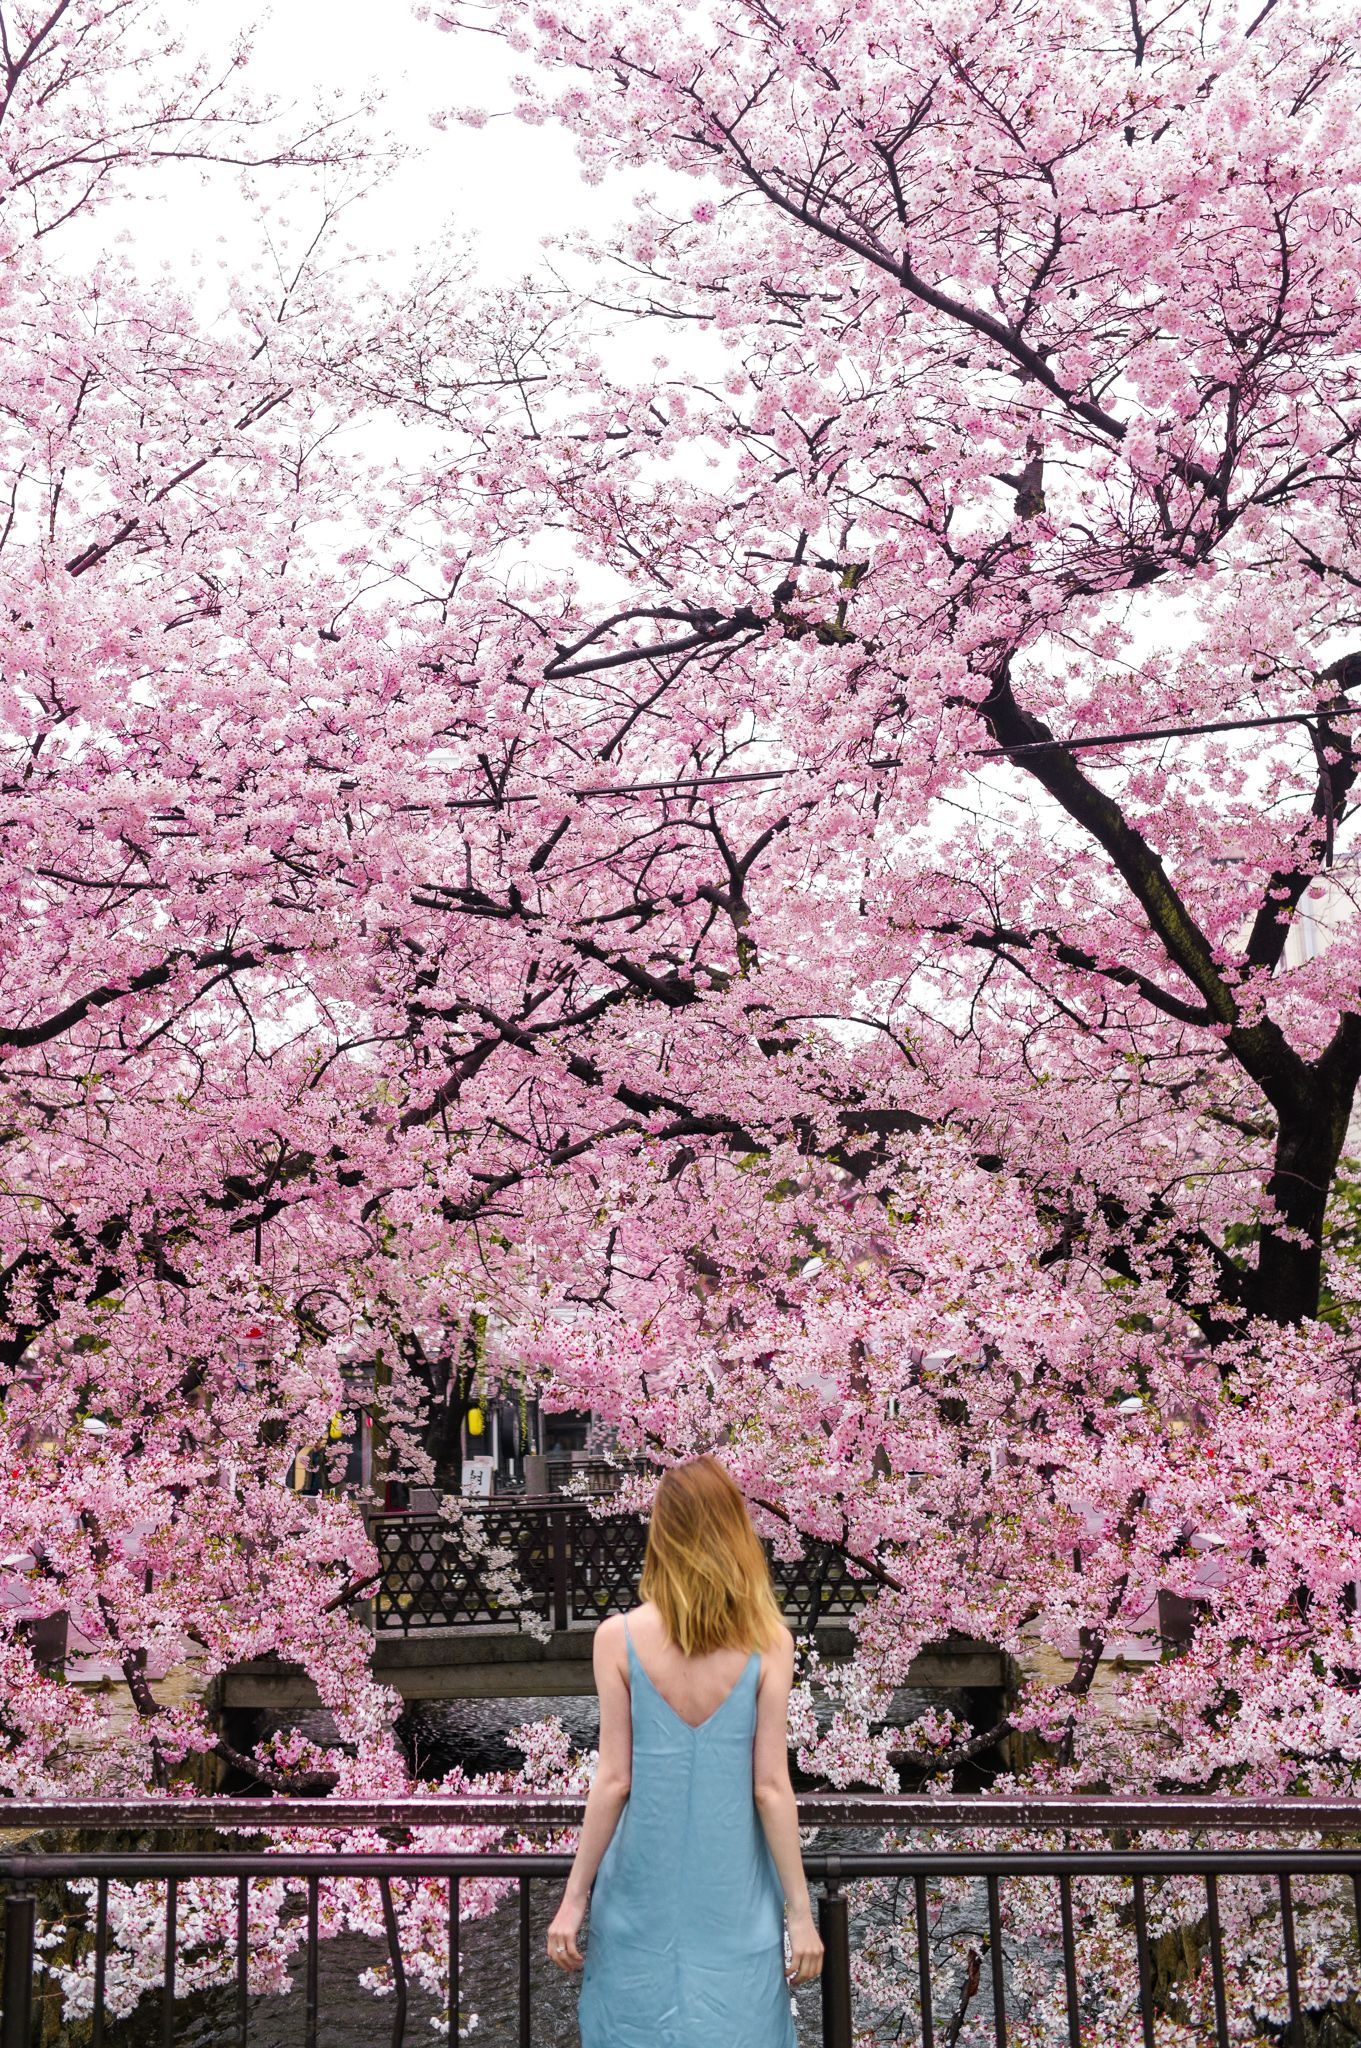 A Complete Guide To Japan S Cherry Blossoms With A Map Why Japan S Cherry Blossoms Should Be On Your Cherry Blossom Japan Seasons Photography Cherry Blossom